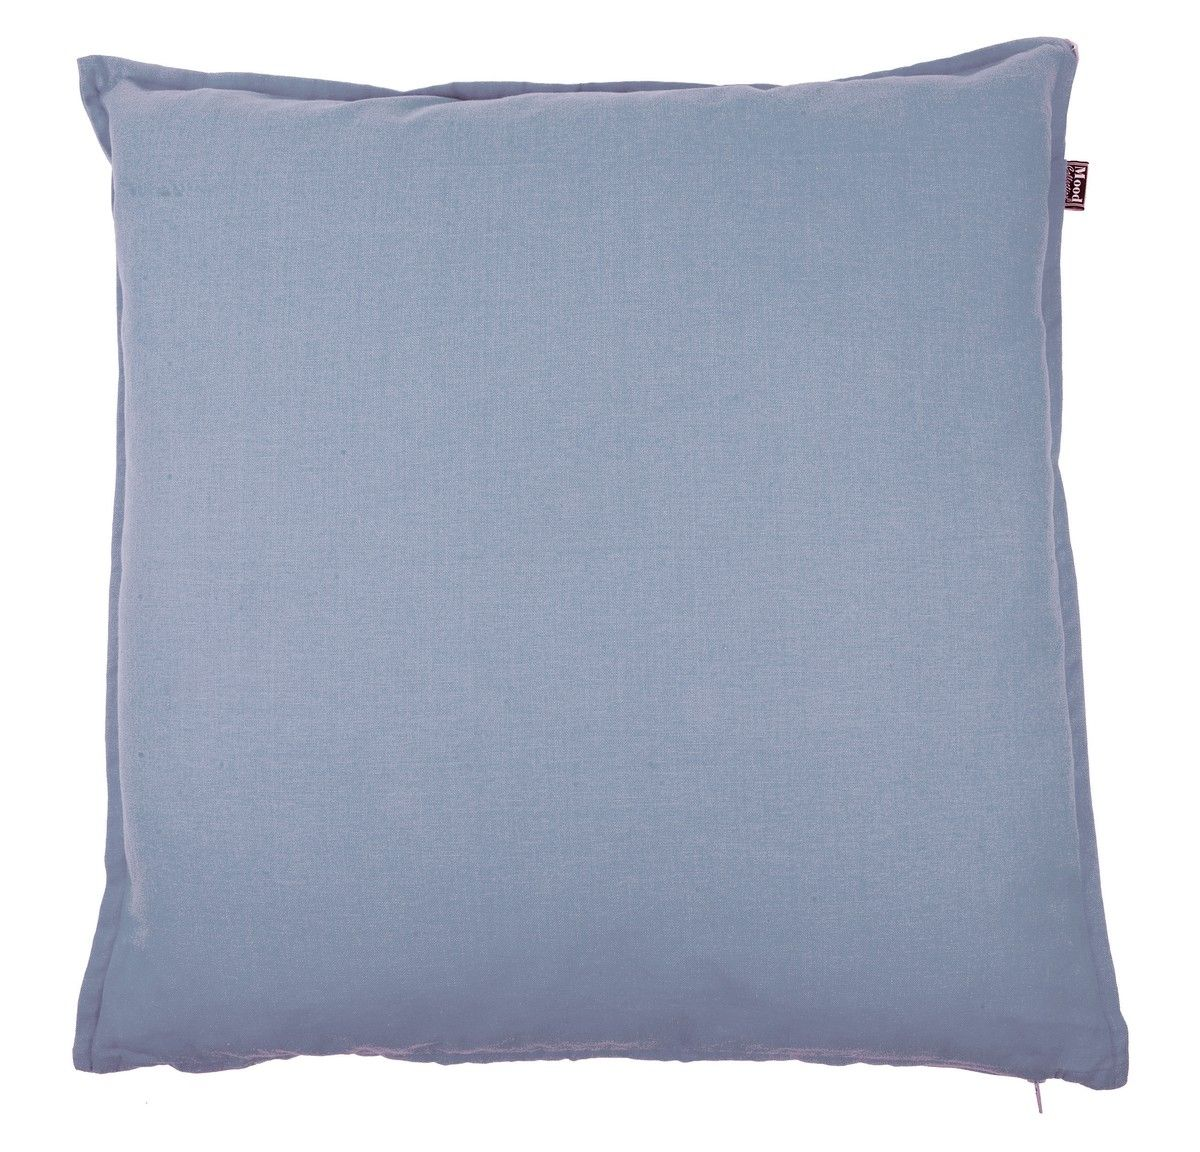 In The Mood Collection Kussens In The Mood Collection Sierkussen Tivoli 65x65cm Faded Blue